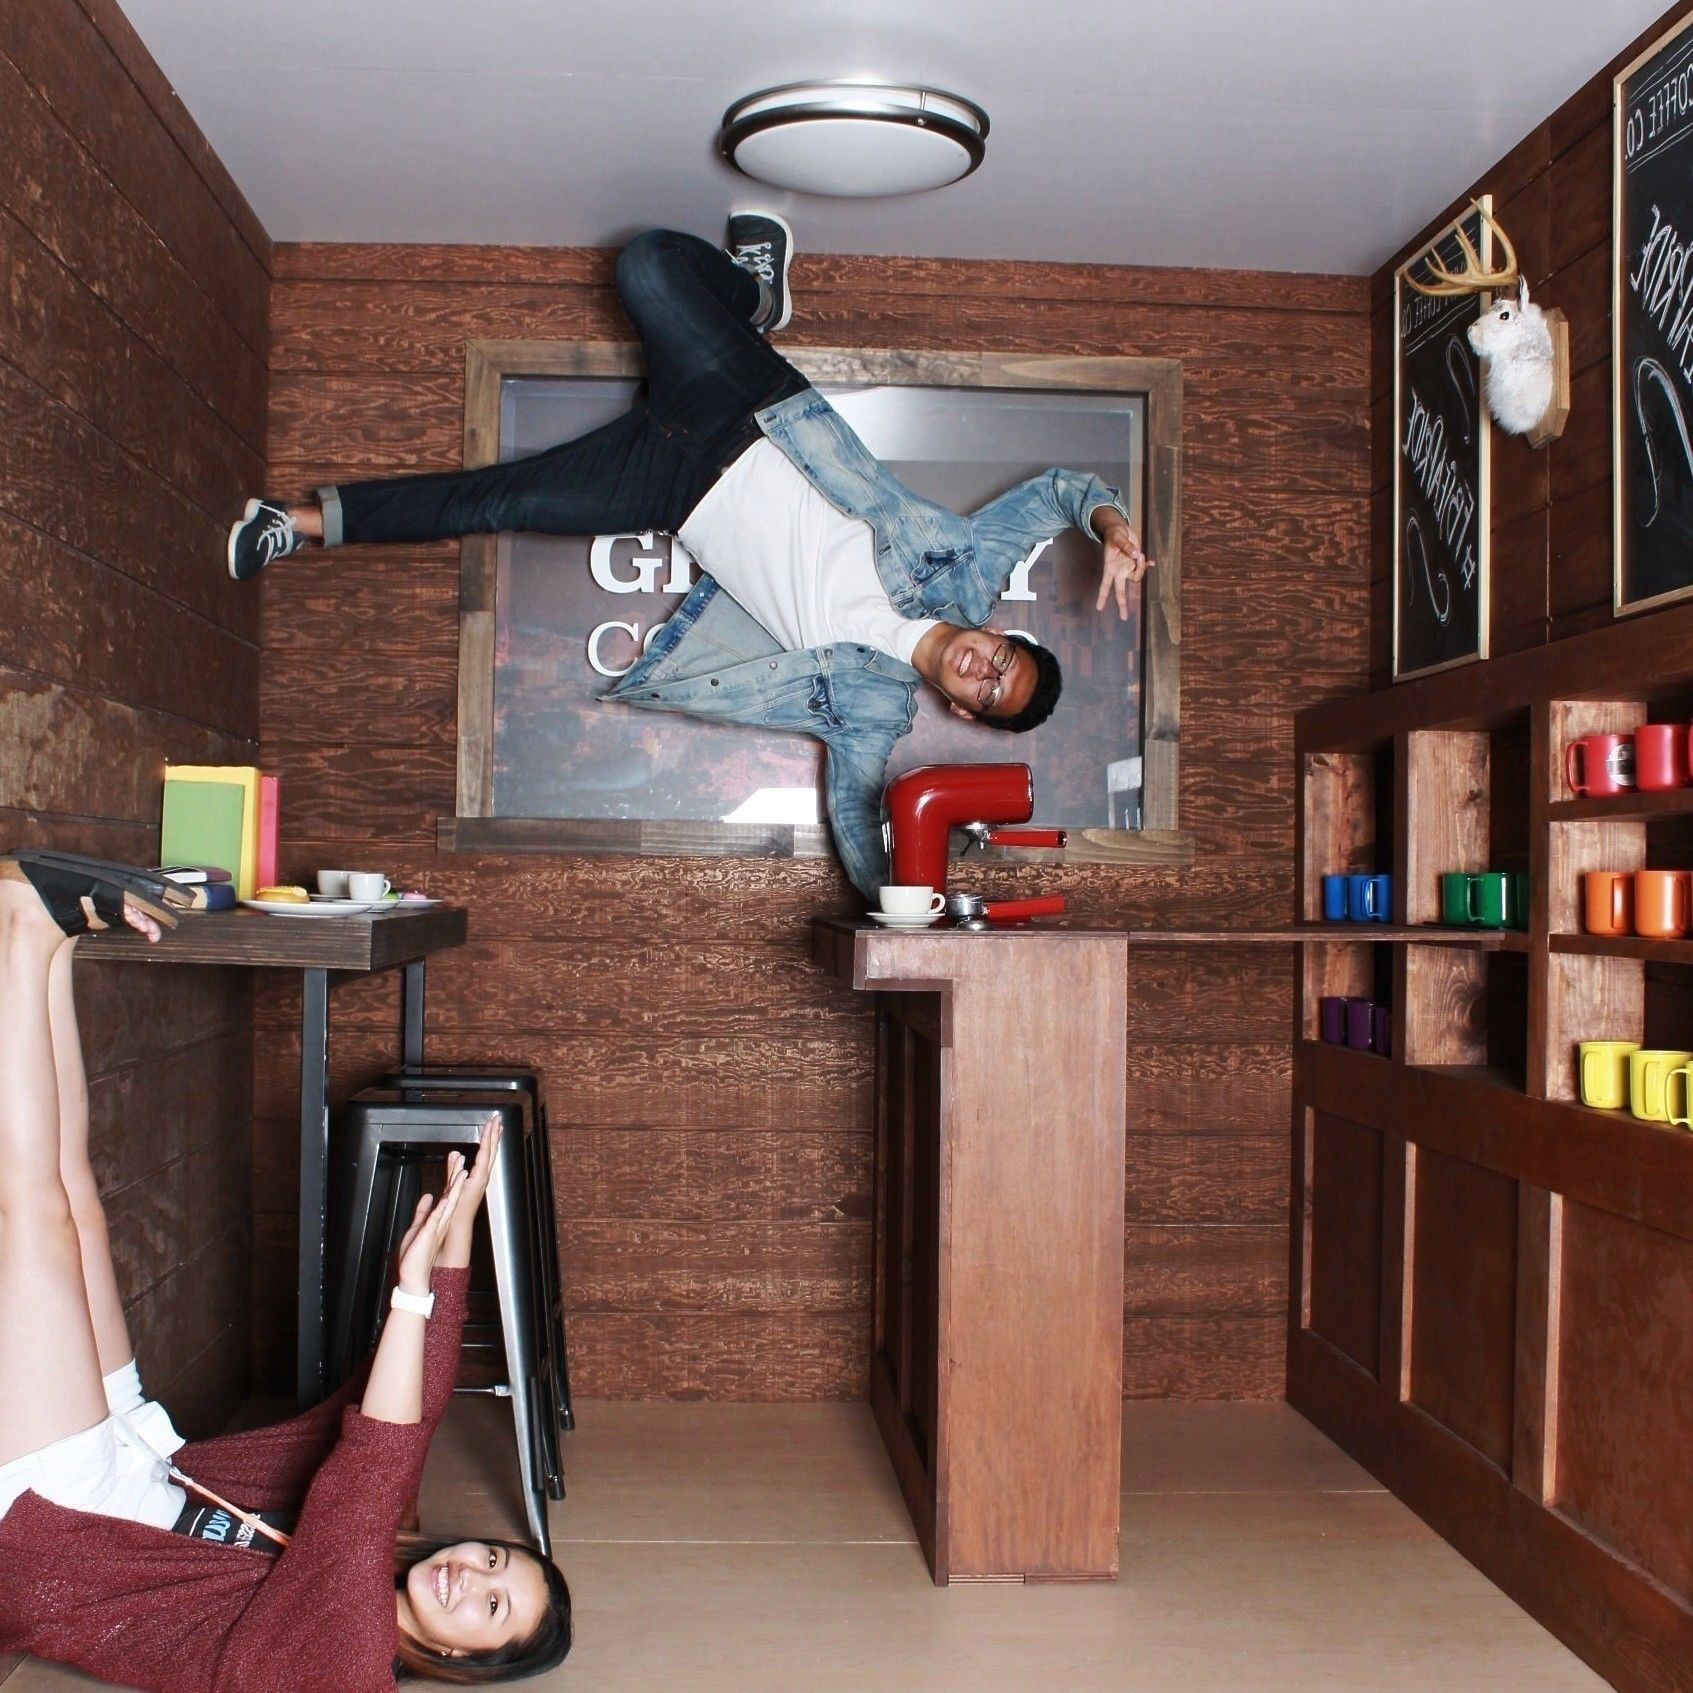 Facebook Gravity Room Photo Experience